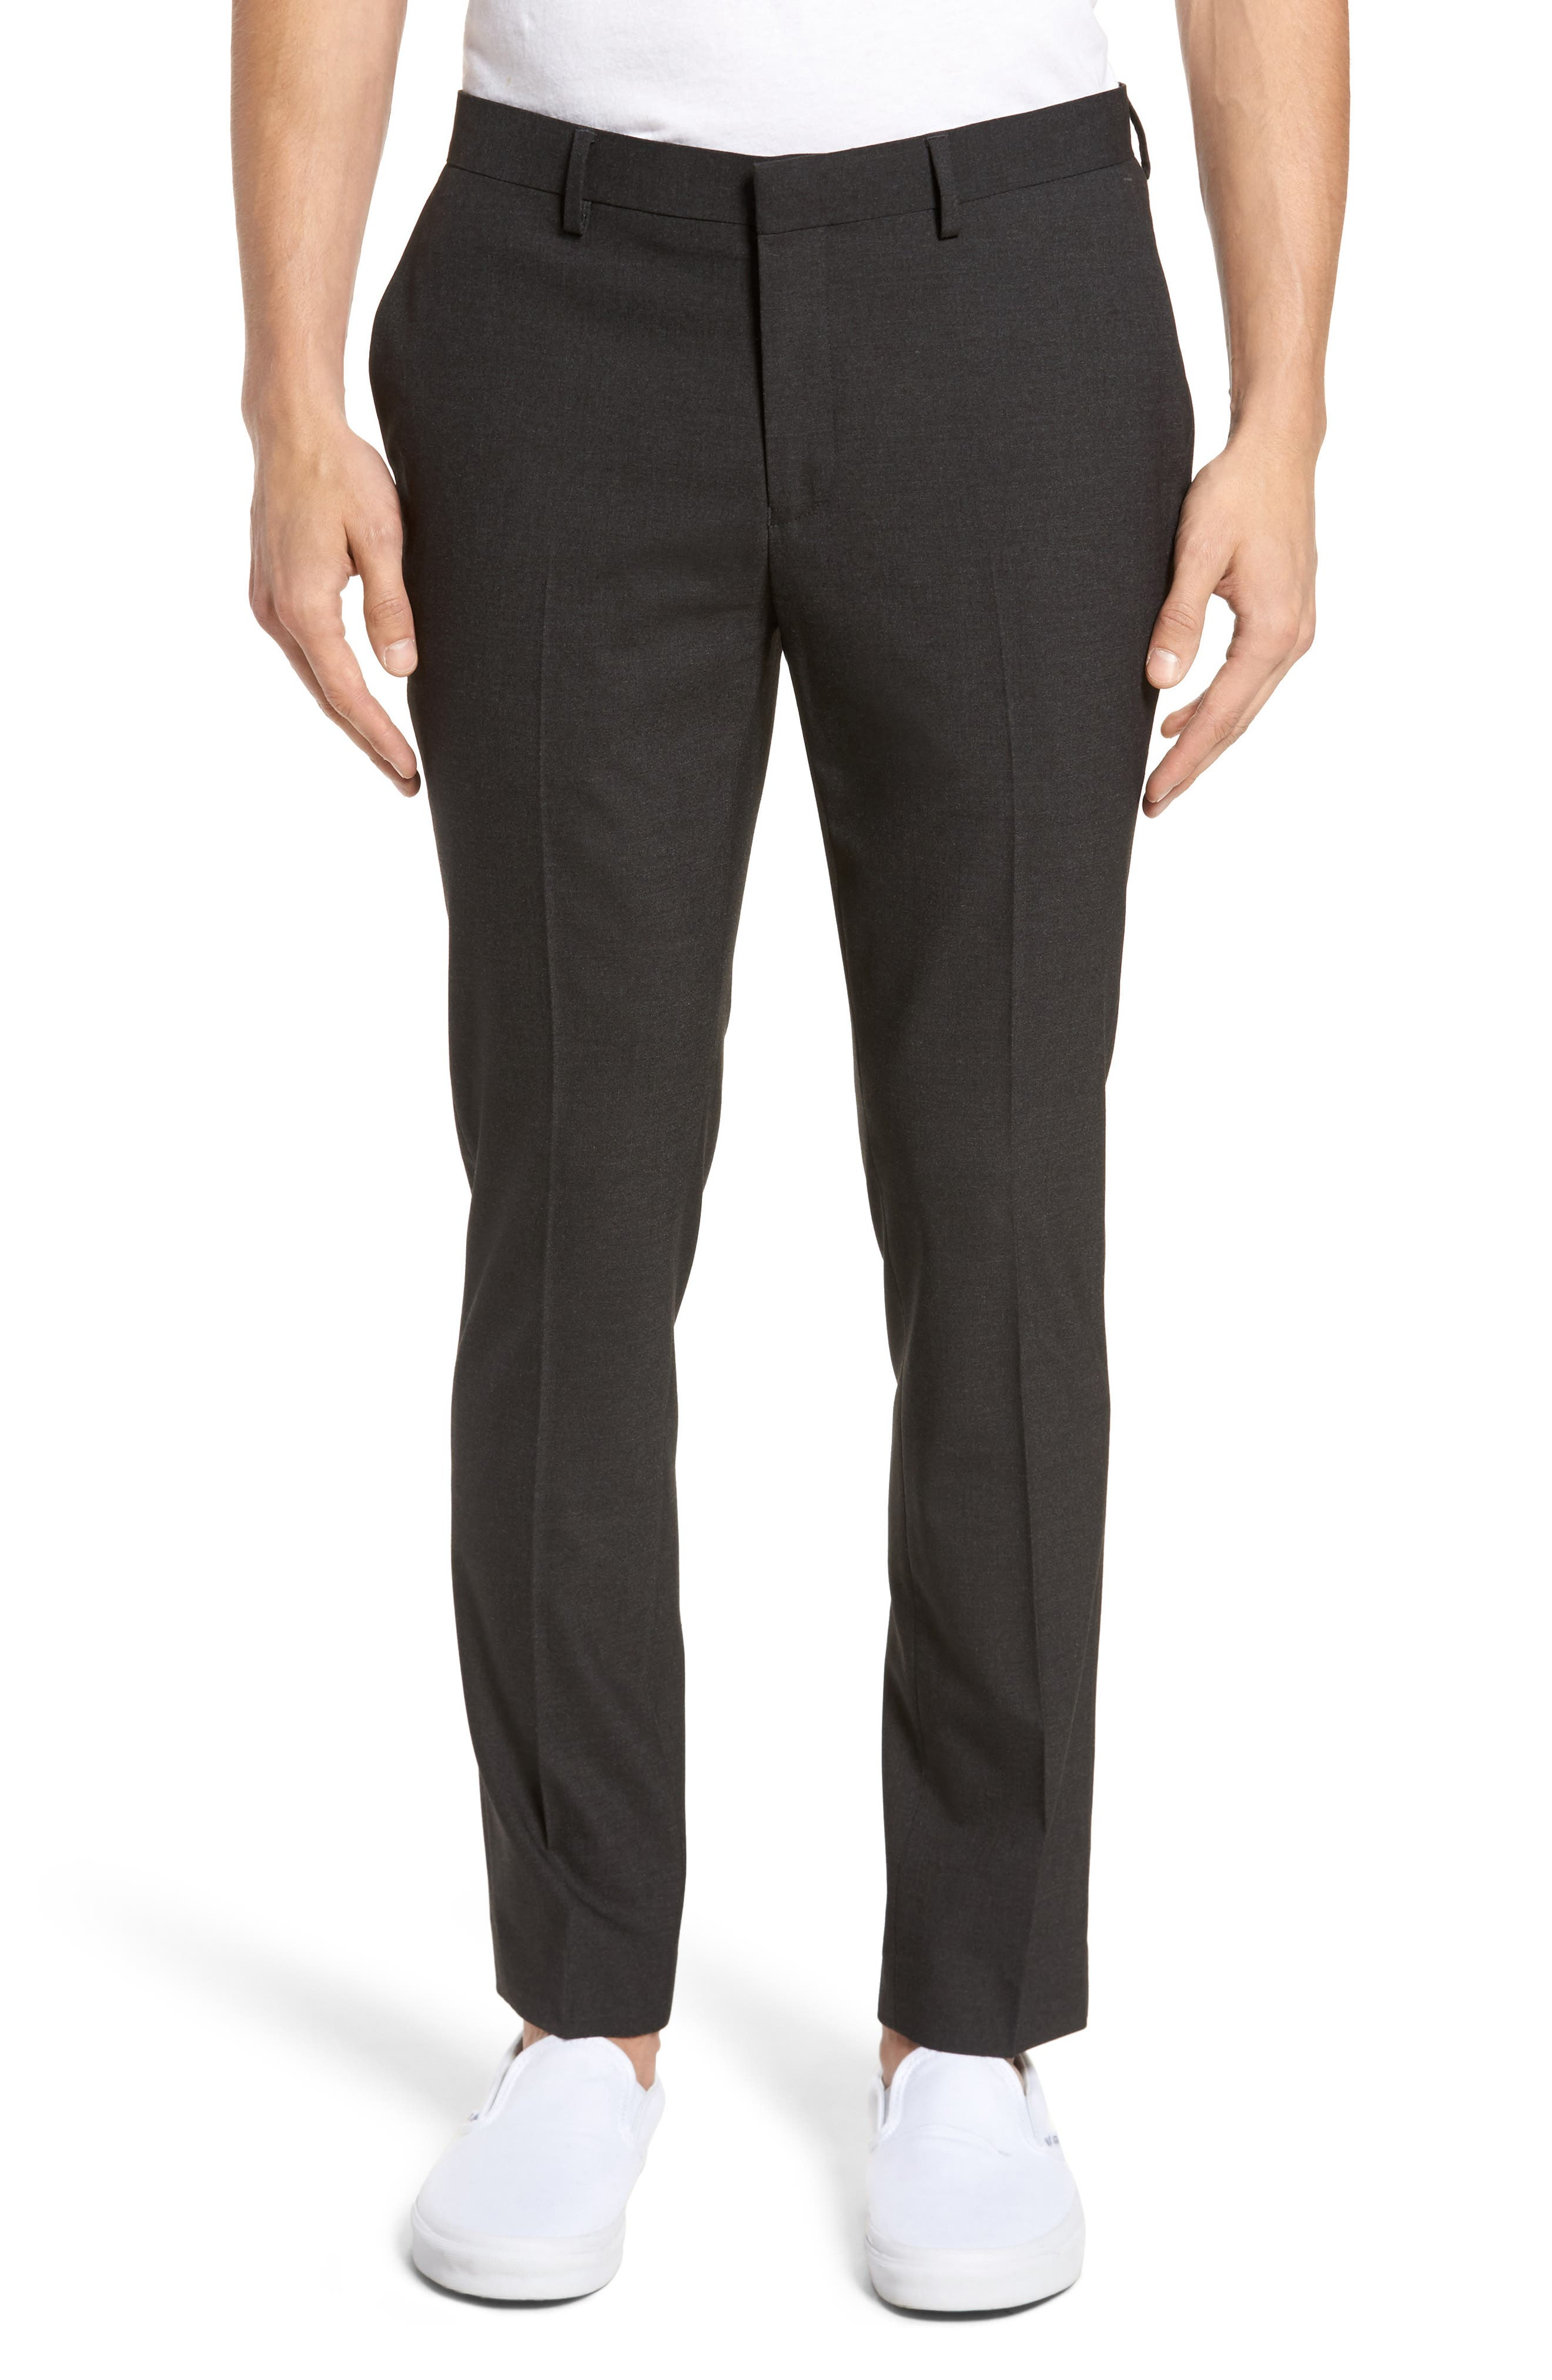 Black Skinny Fit Trousers,                         Main,                         color, Charcoal